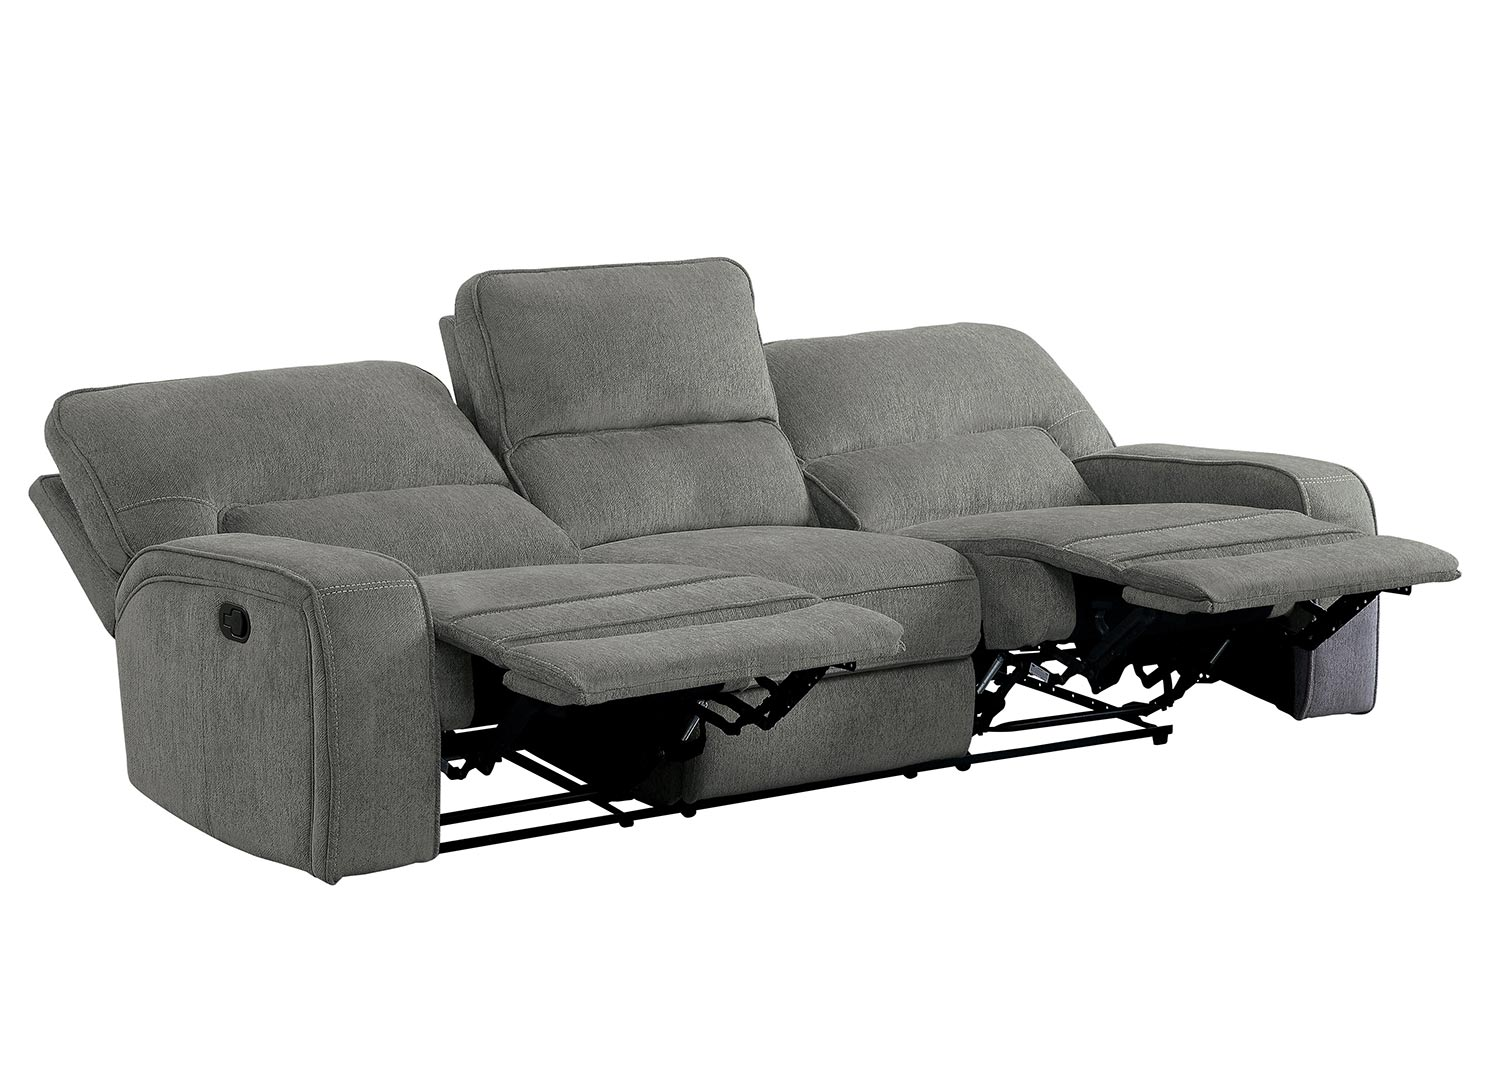 Homelegance Borneo Power Double Reclining Sofa with Power Headrest - Mocha